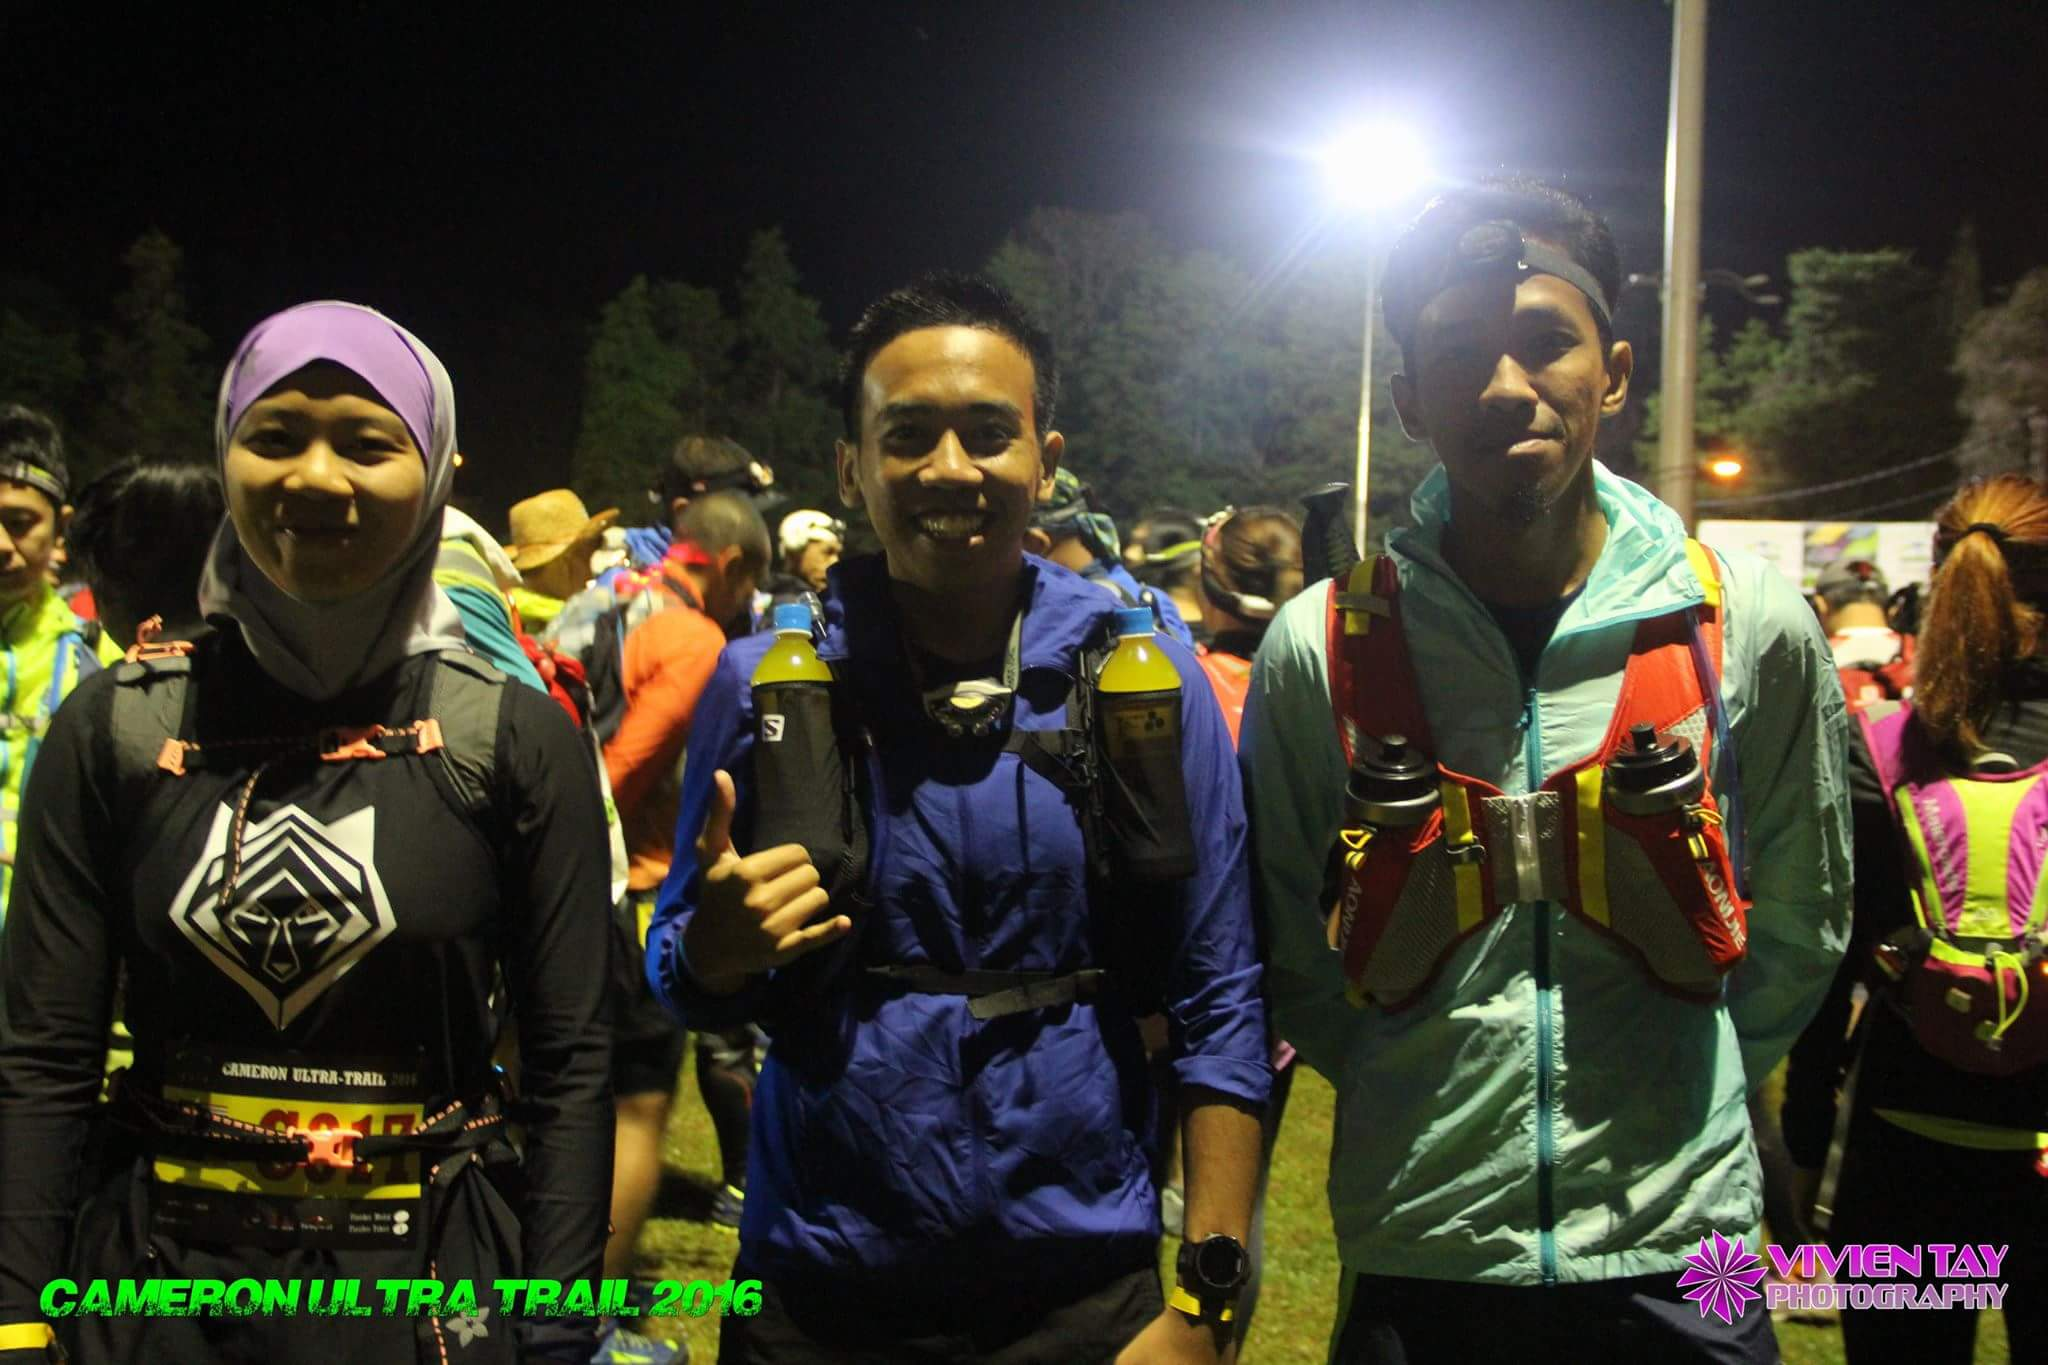 With other 50km runners